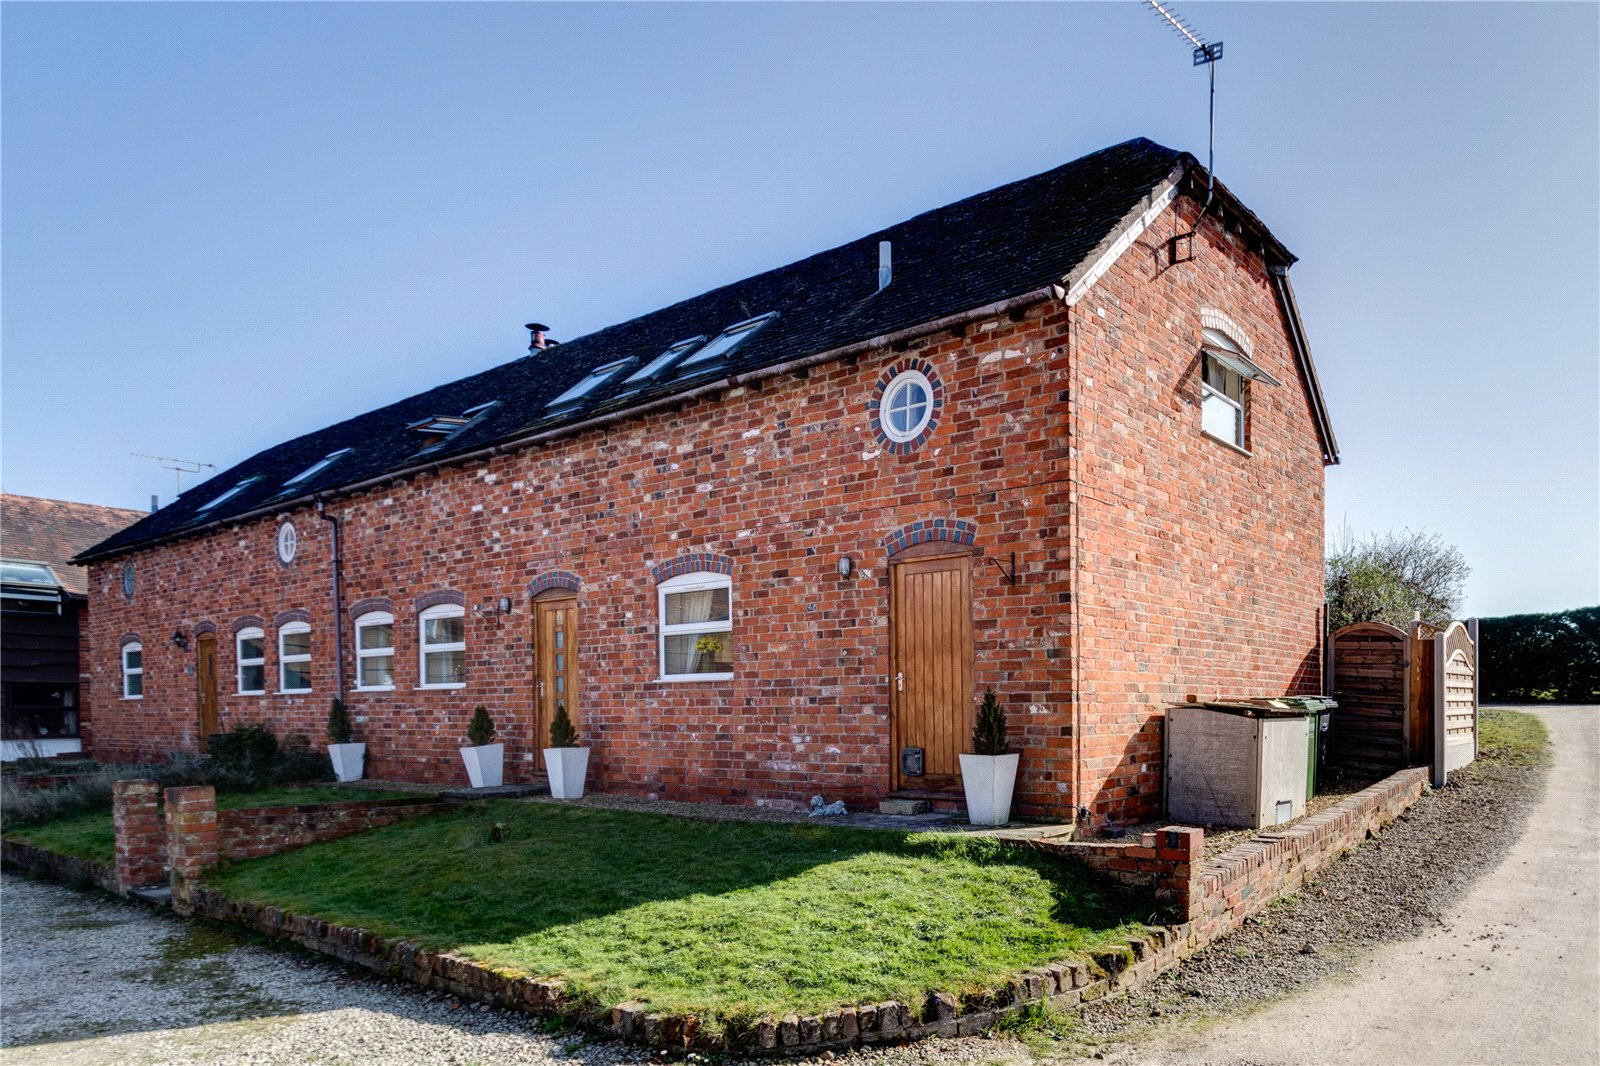 Cj Hole Worcester 3 Bedroom Barn Conversion For Sale In